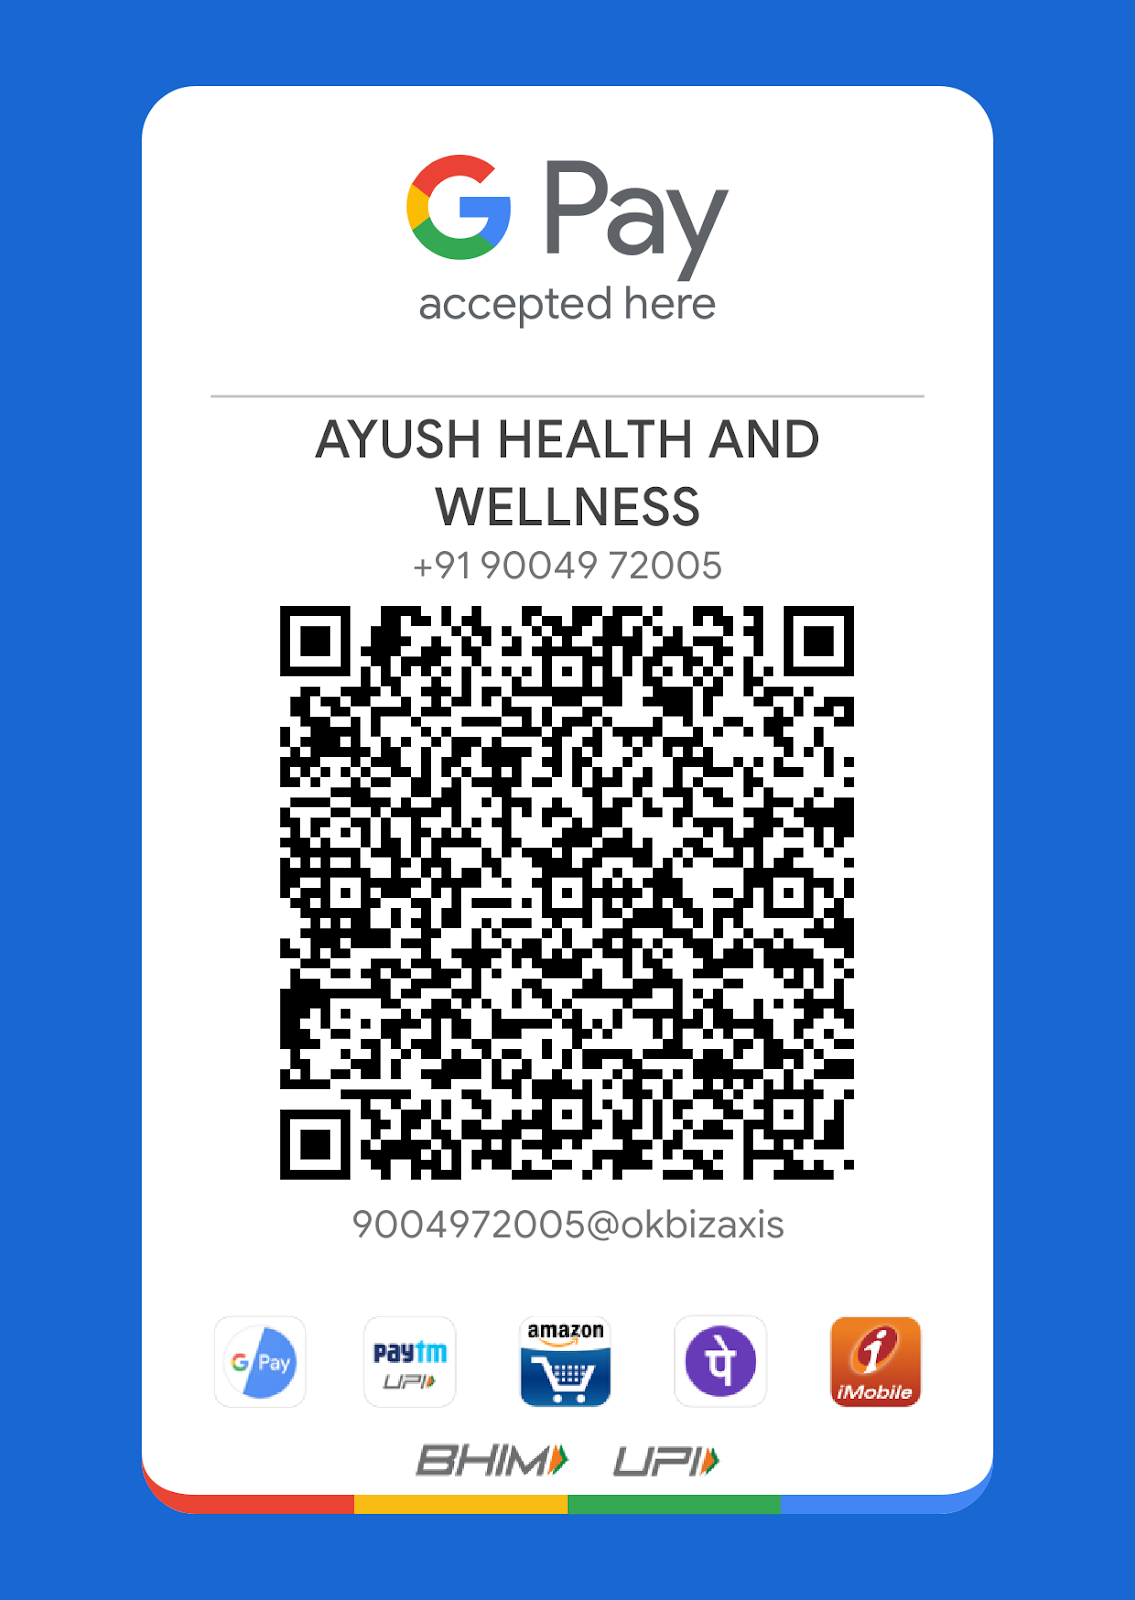 Payment AYUSH HEALTH AND WELLNESS™ Easily and Save your Time! Pay on time and take a regular service from AYUSH HEALTH AND WELLNESS™. Live your life with Ayush.